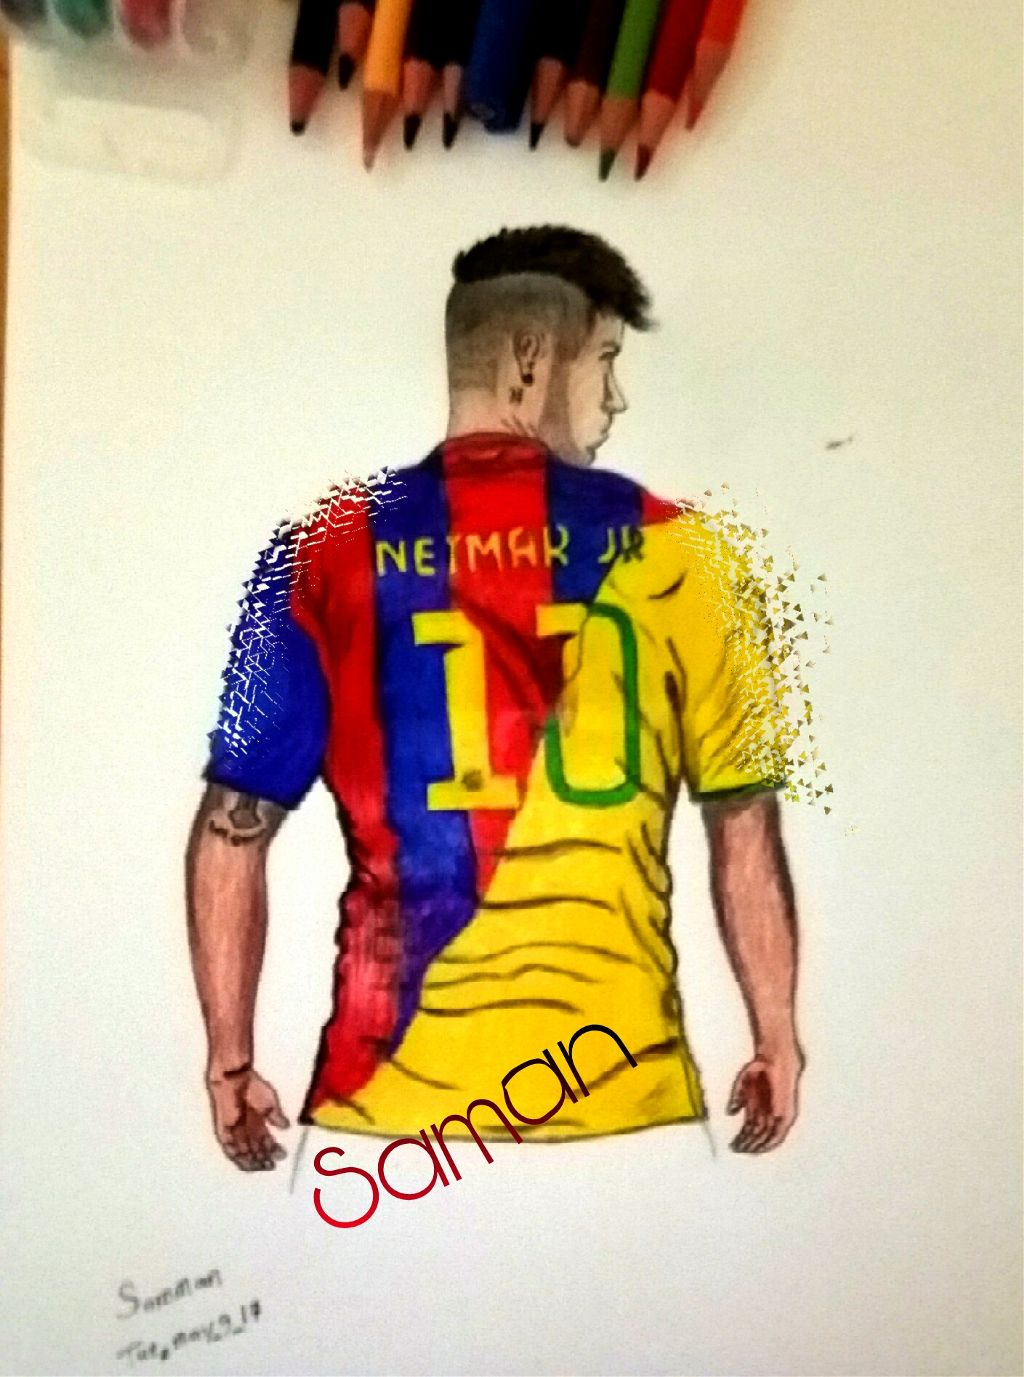 ae7f7e74073  FreeToEdit  neymar  drawing  draw  pictures  picsart  painting  colors